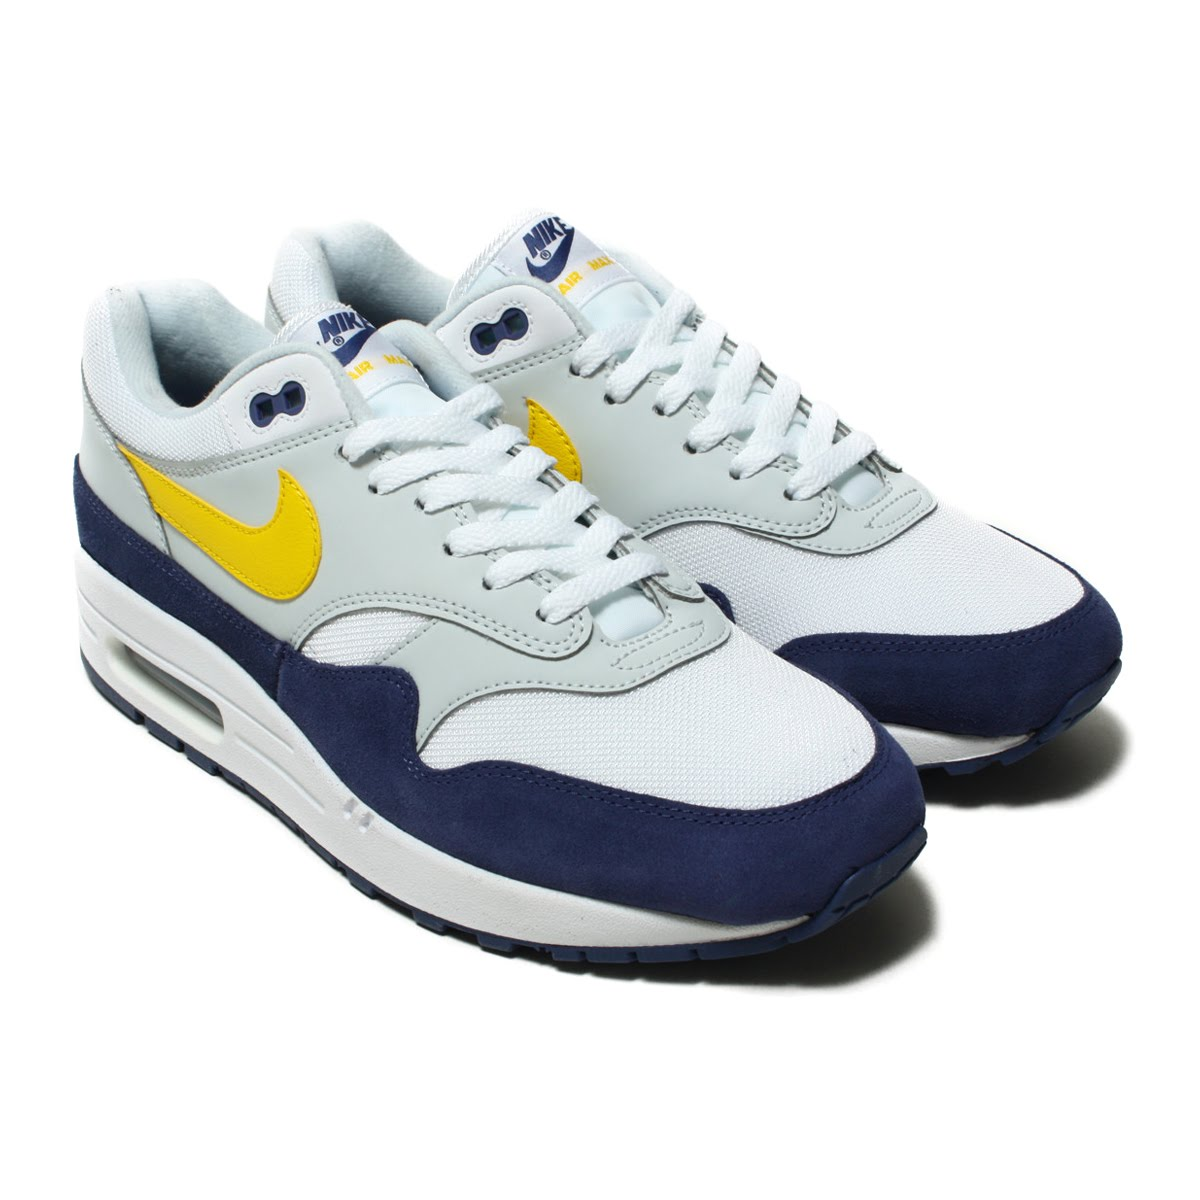 NIKE AIR MAX 1 (Kie Ney AMAX 1) (WHITE/TOUR YELLOW-BLUE RECALL) 18SU-I